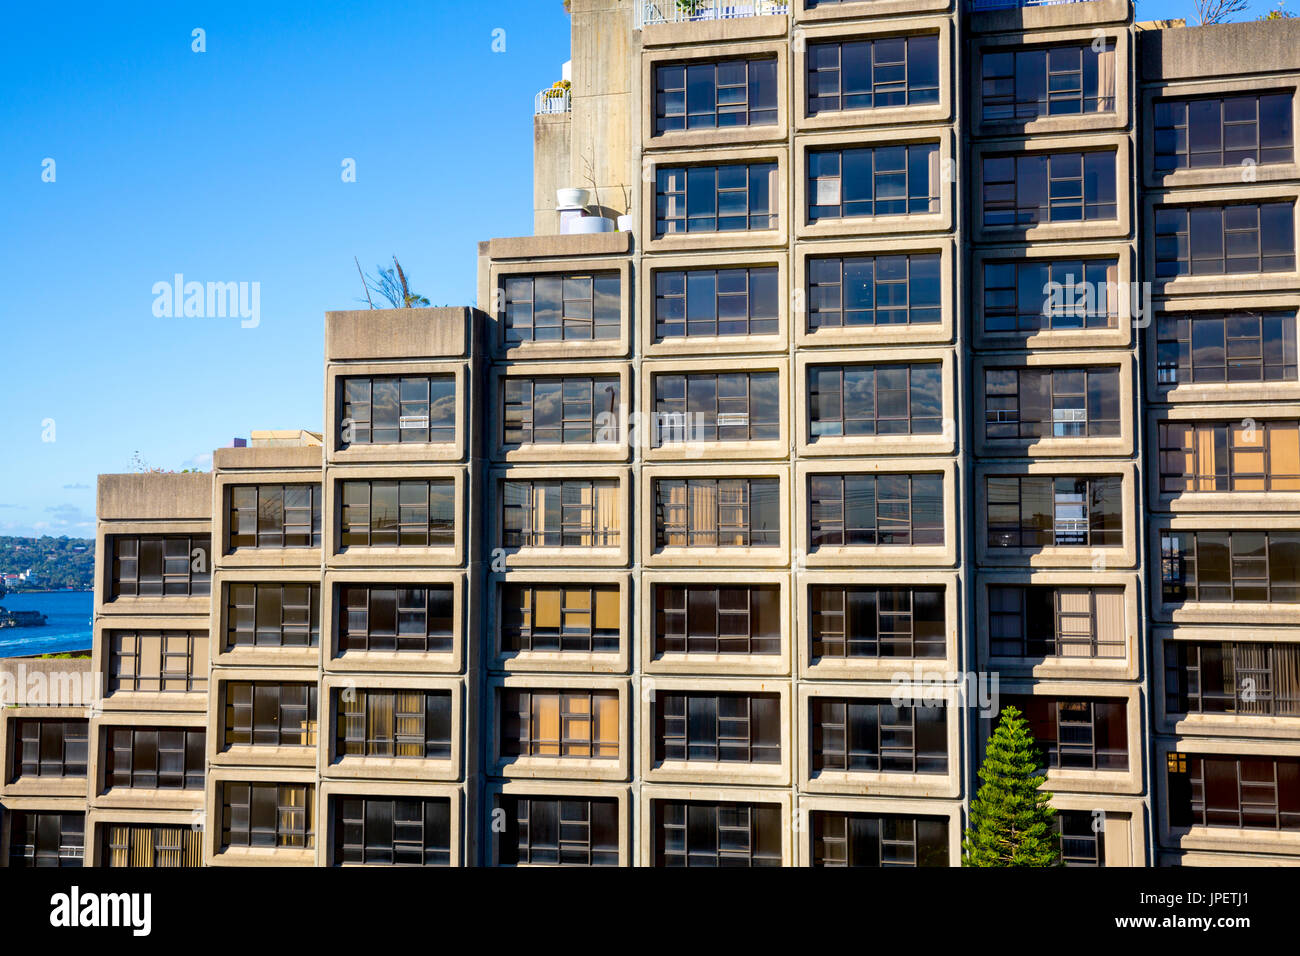 Sirius public housing building in the Rocks area of Sydney city centre,new south wales,Australia - Stock Image